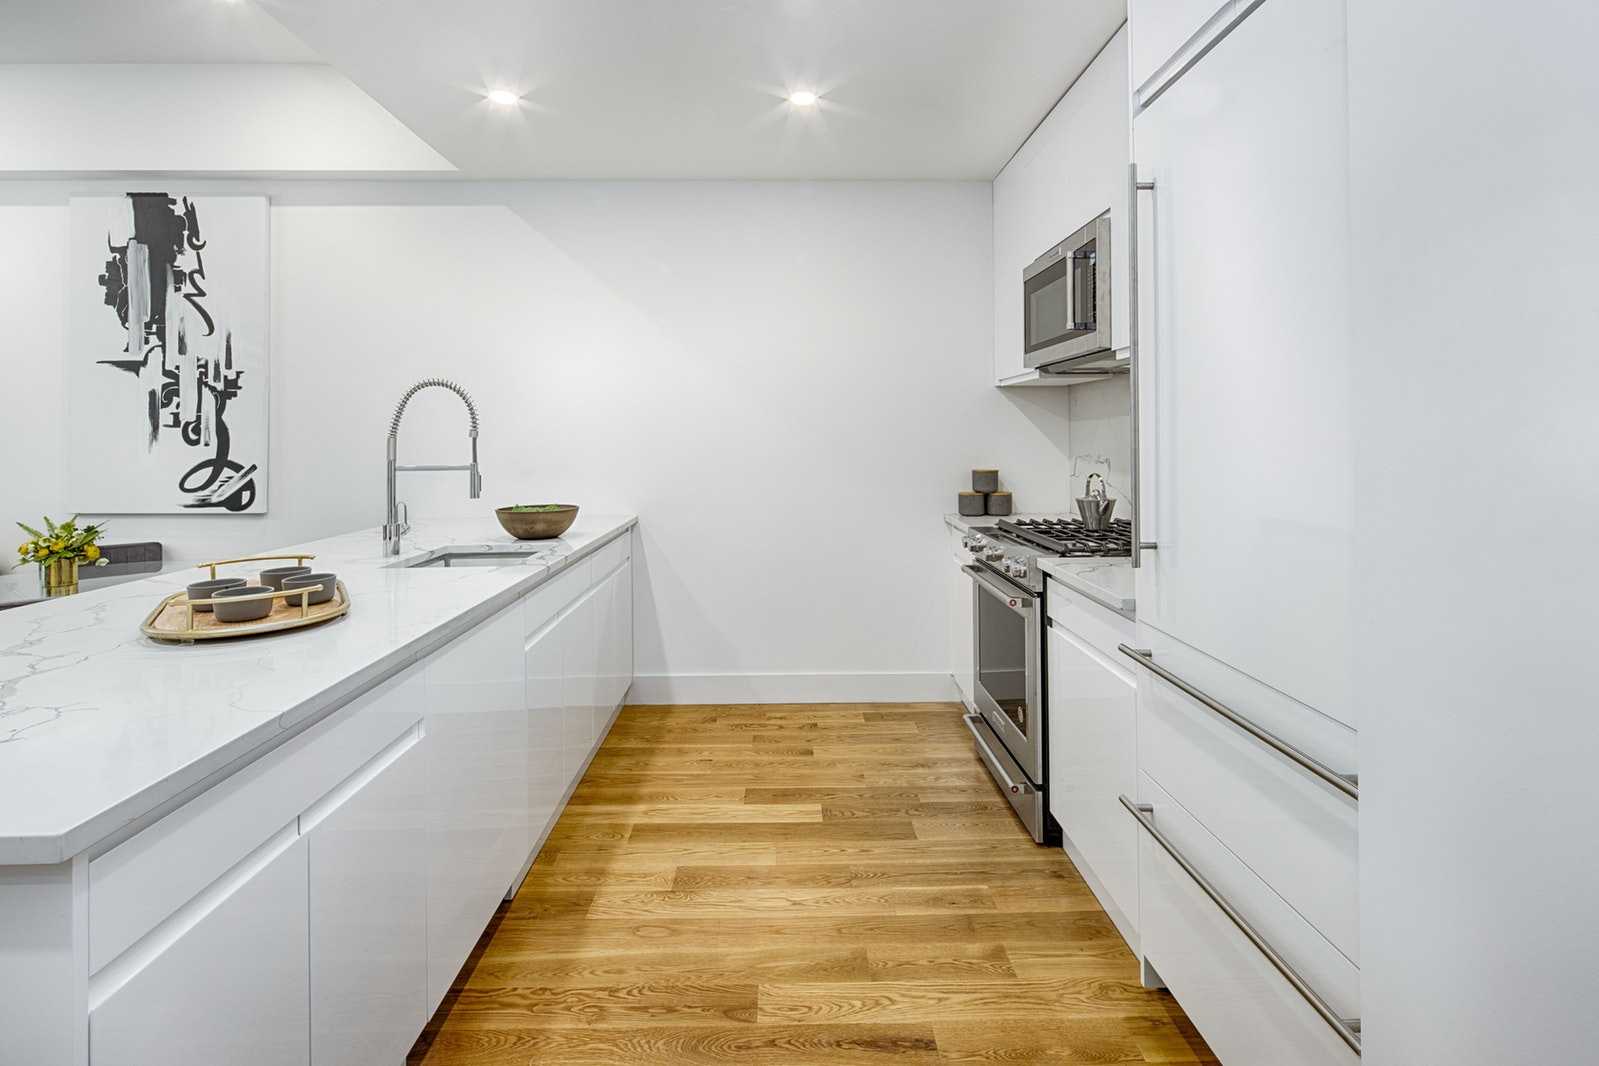 21 Powers Street Phc, Williamsburg, Brooklyn, NY, 11217, $995,000, Property For Sale, Halstead Real Estate, Photo 3